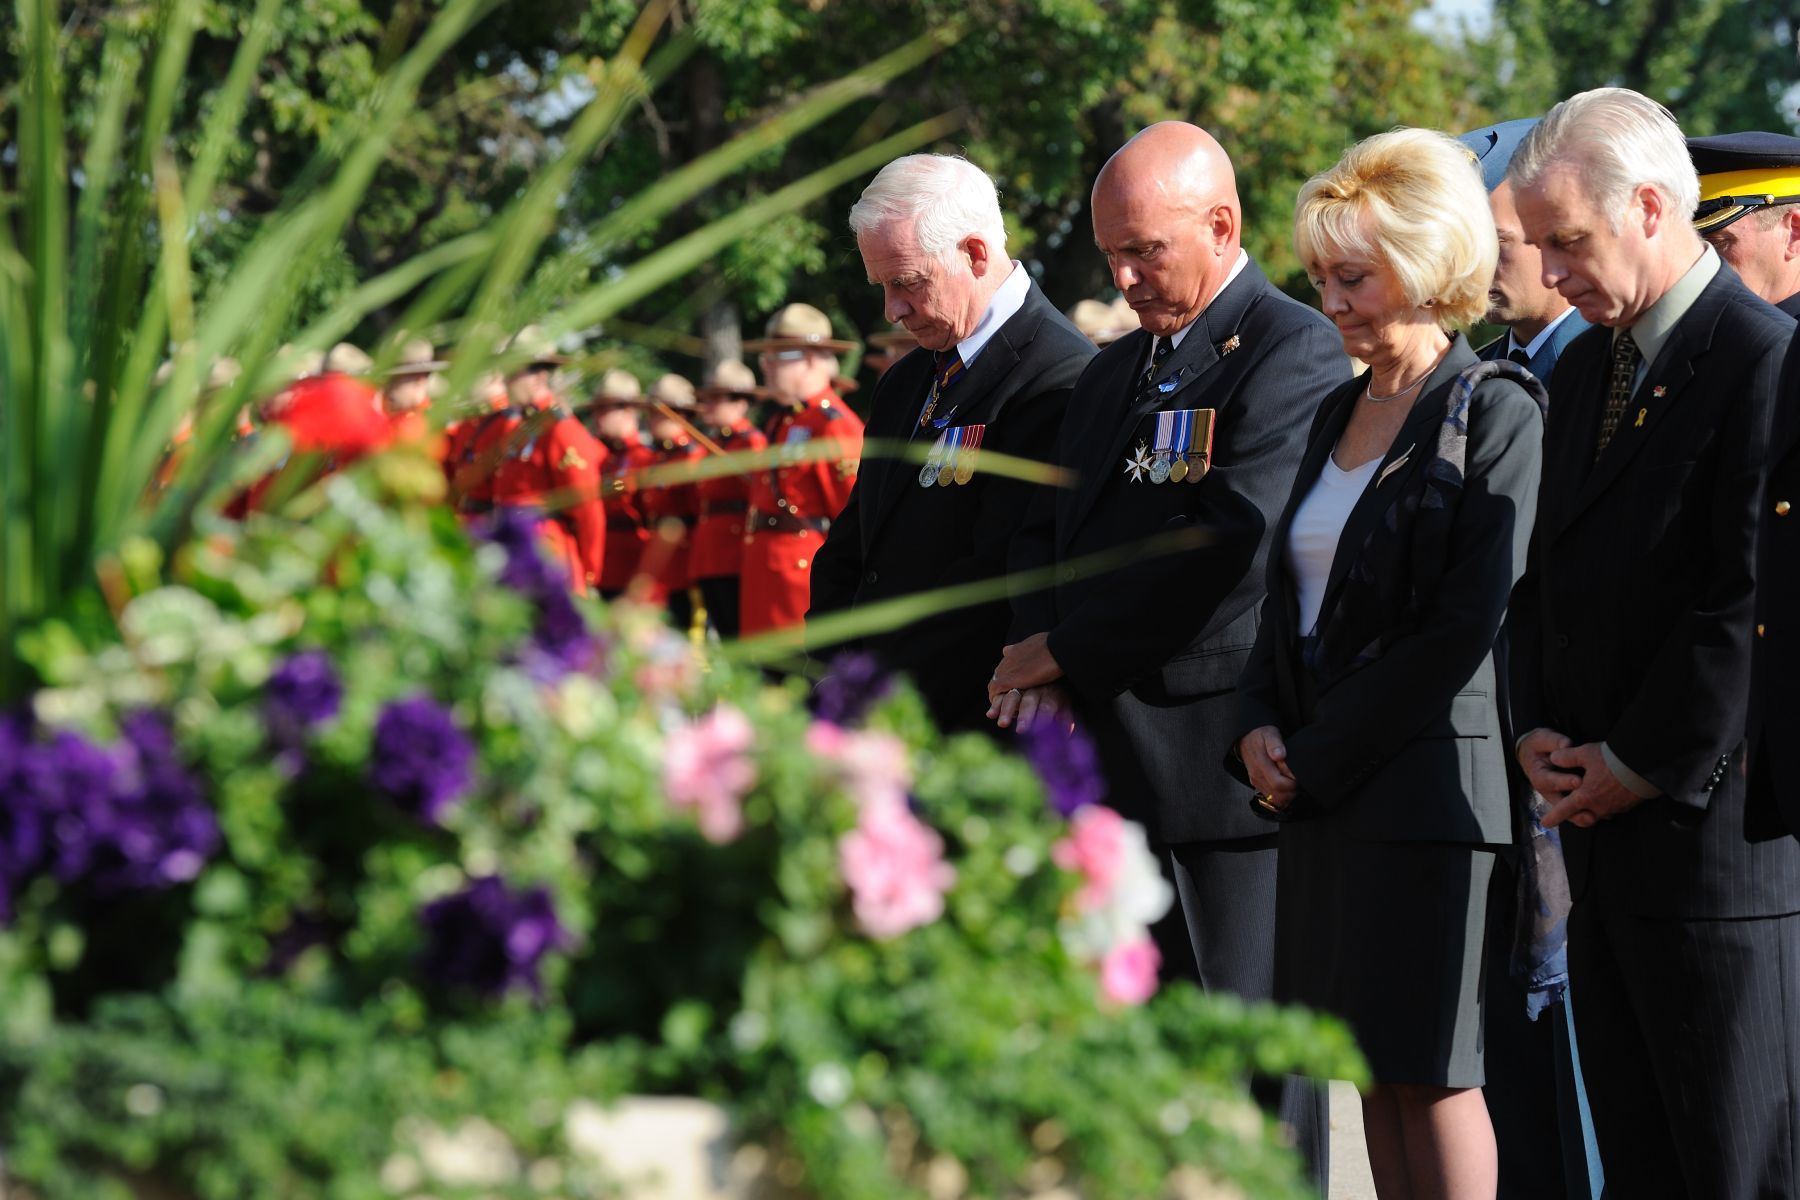 After laying a wreath at the Memorial Wall, the Governor General and other officials honoured fallen members with a minute of silence.